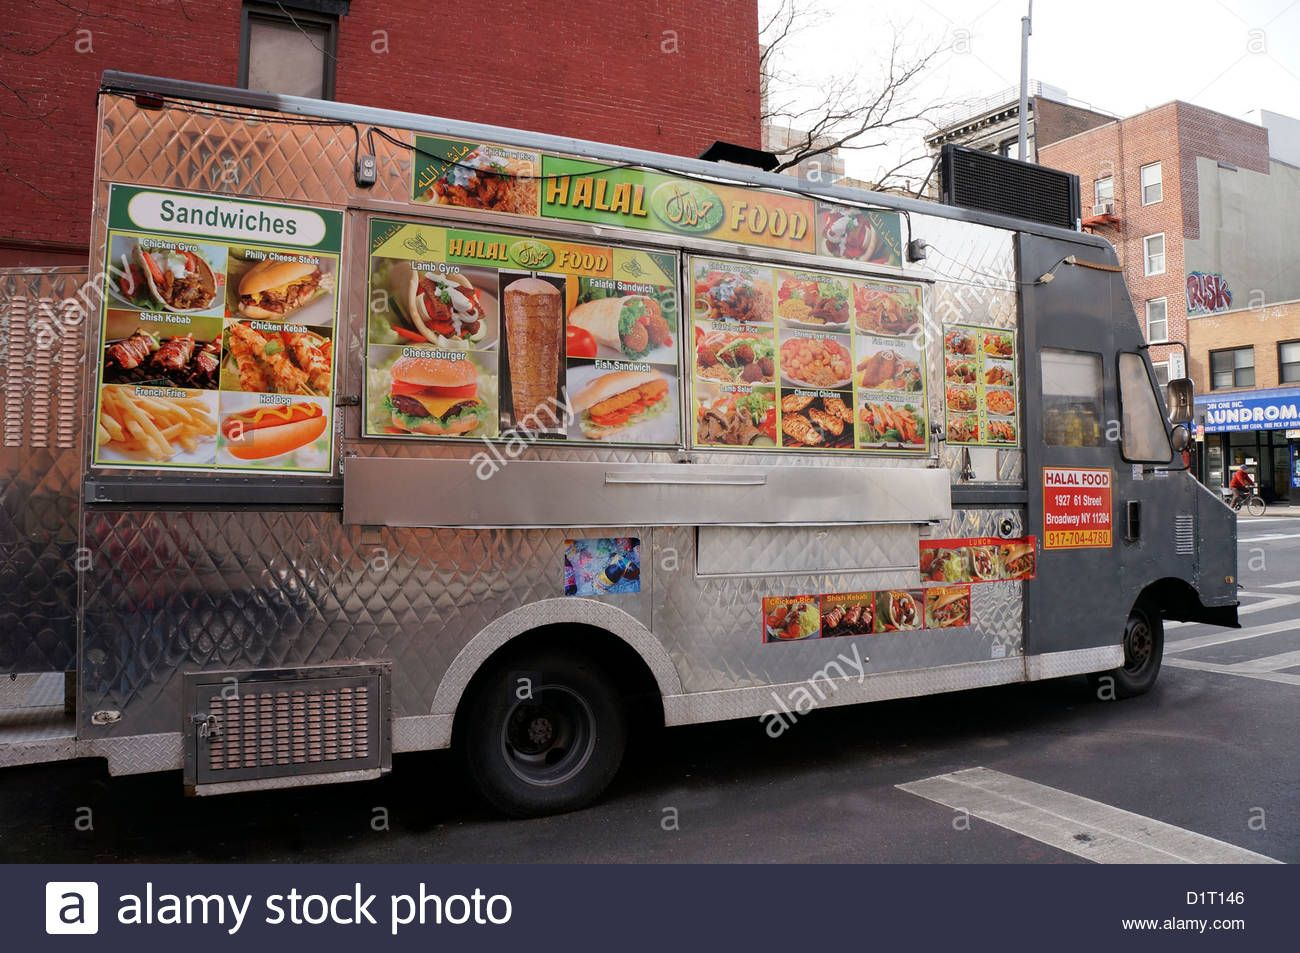 Halal Food Truck In The East Village Area